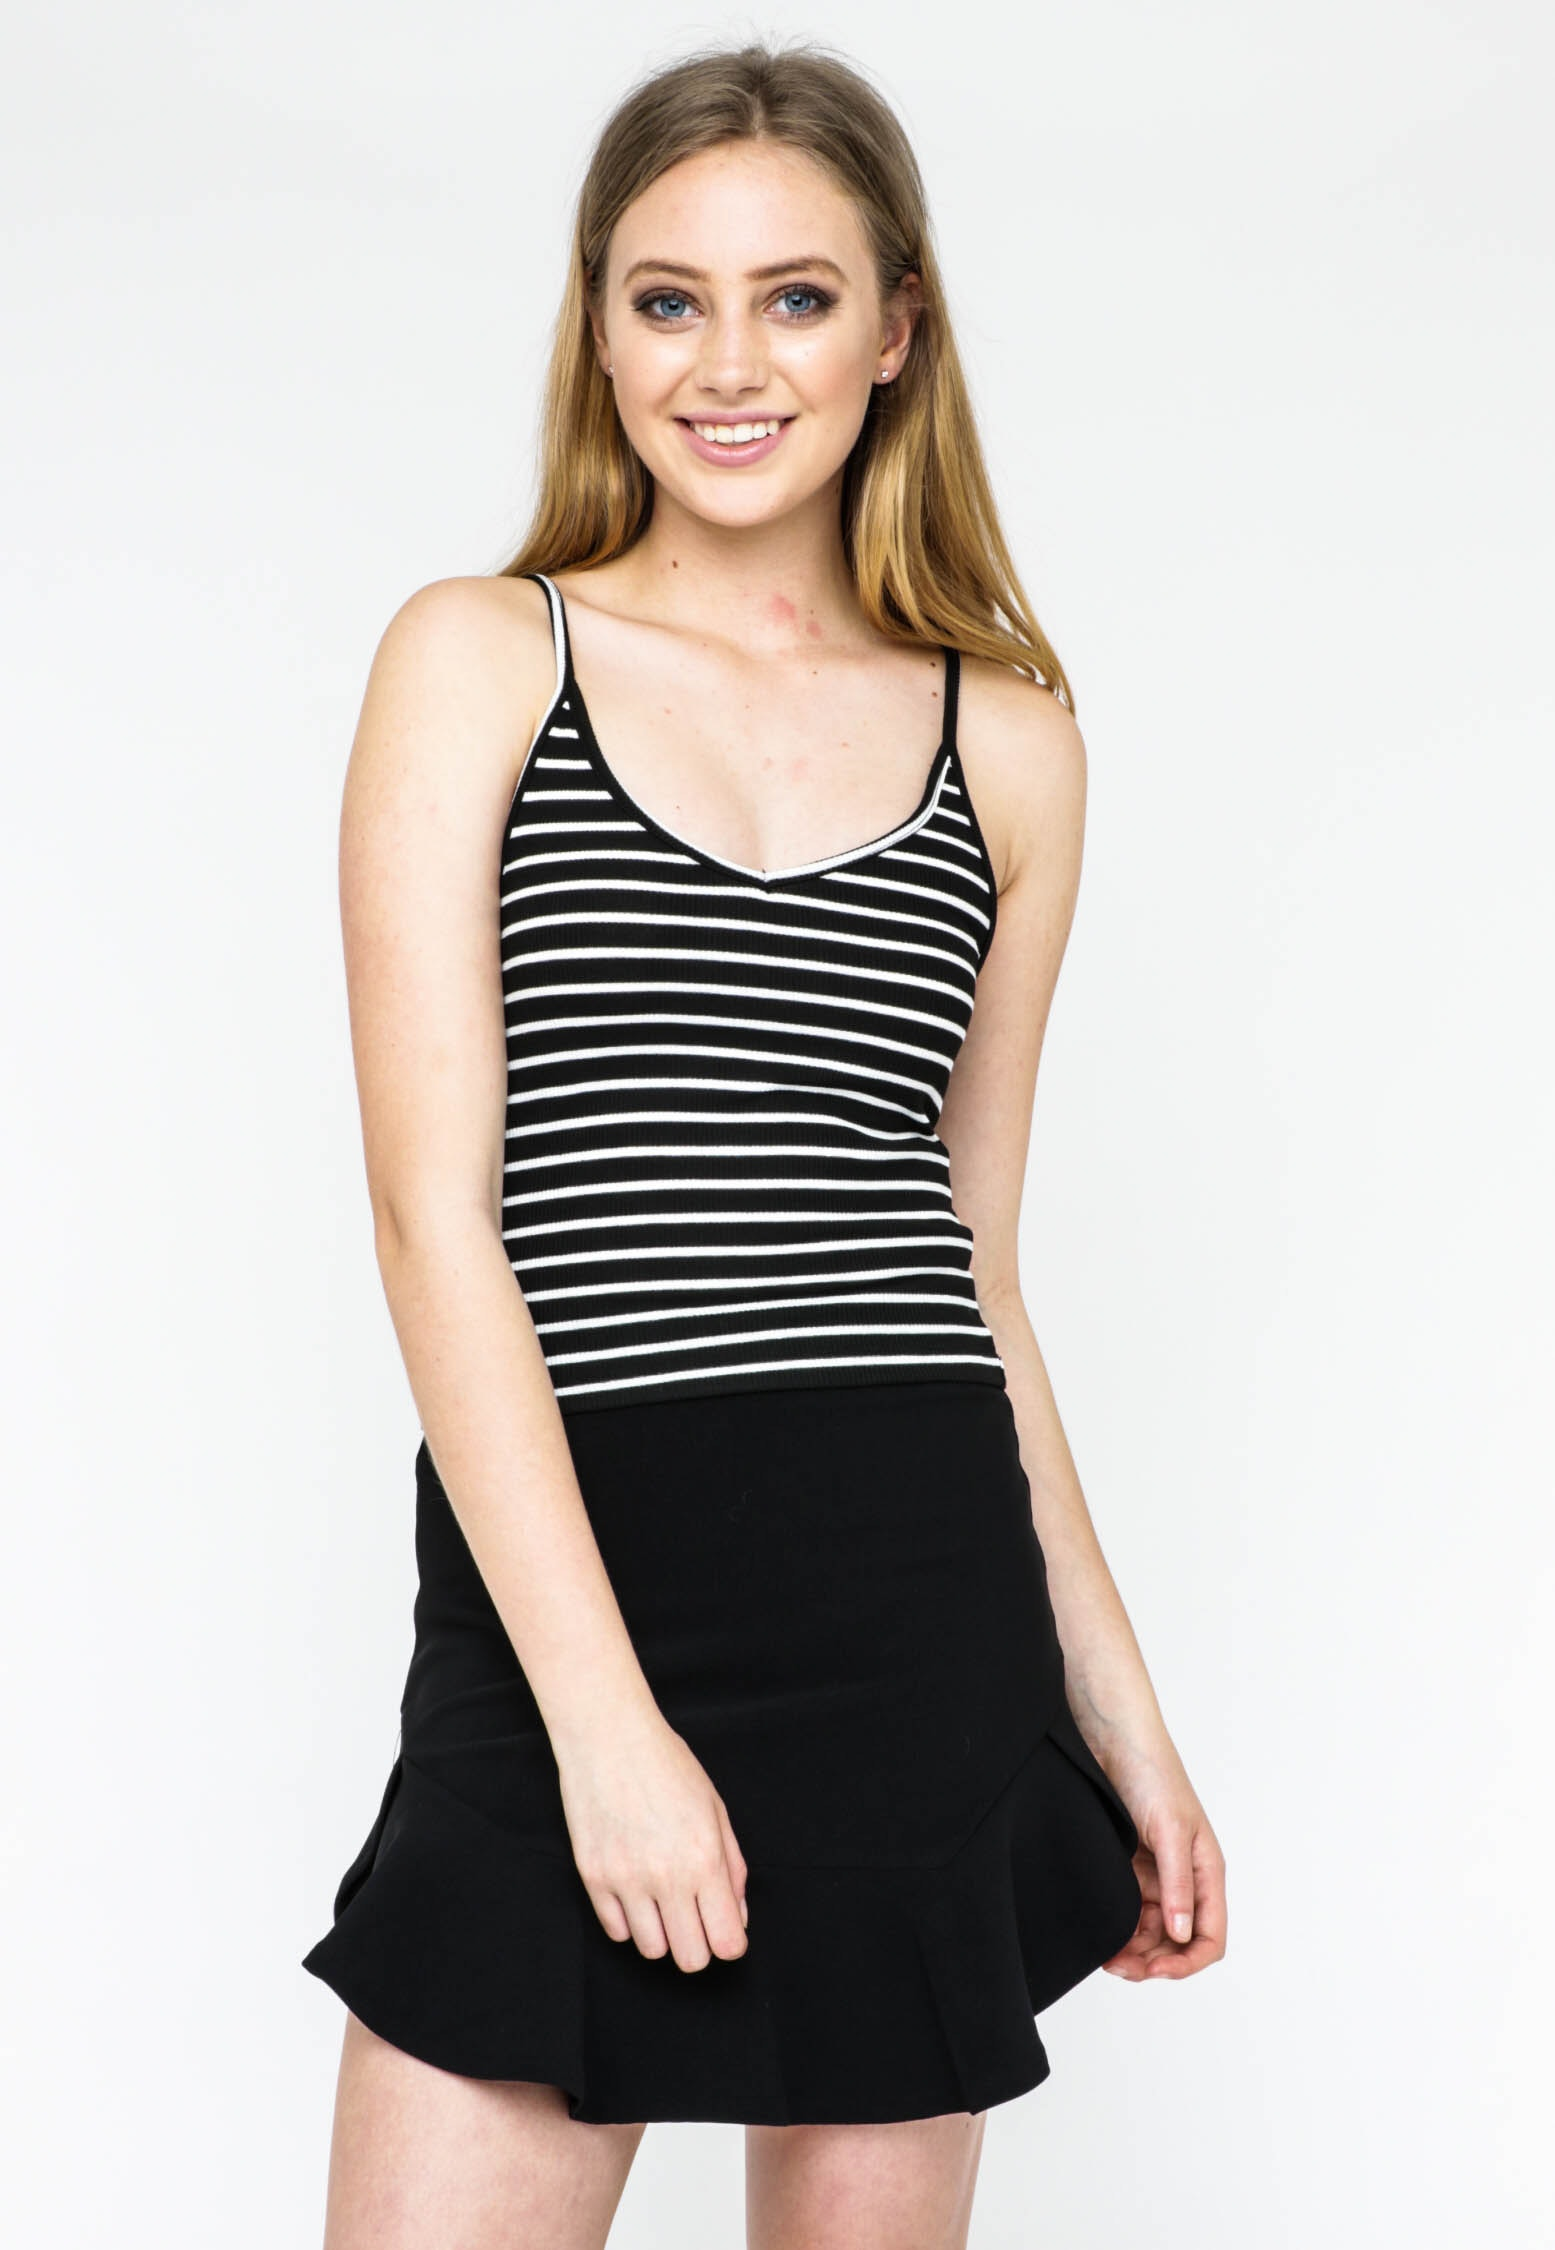 All About Eve - Chain Reaction Crop Tank - Black/White